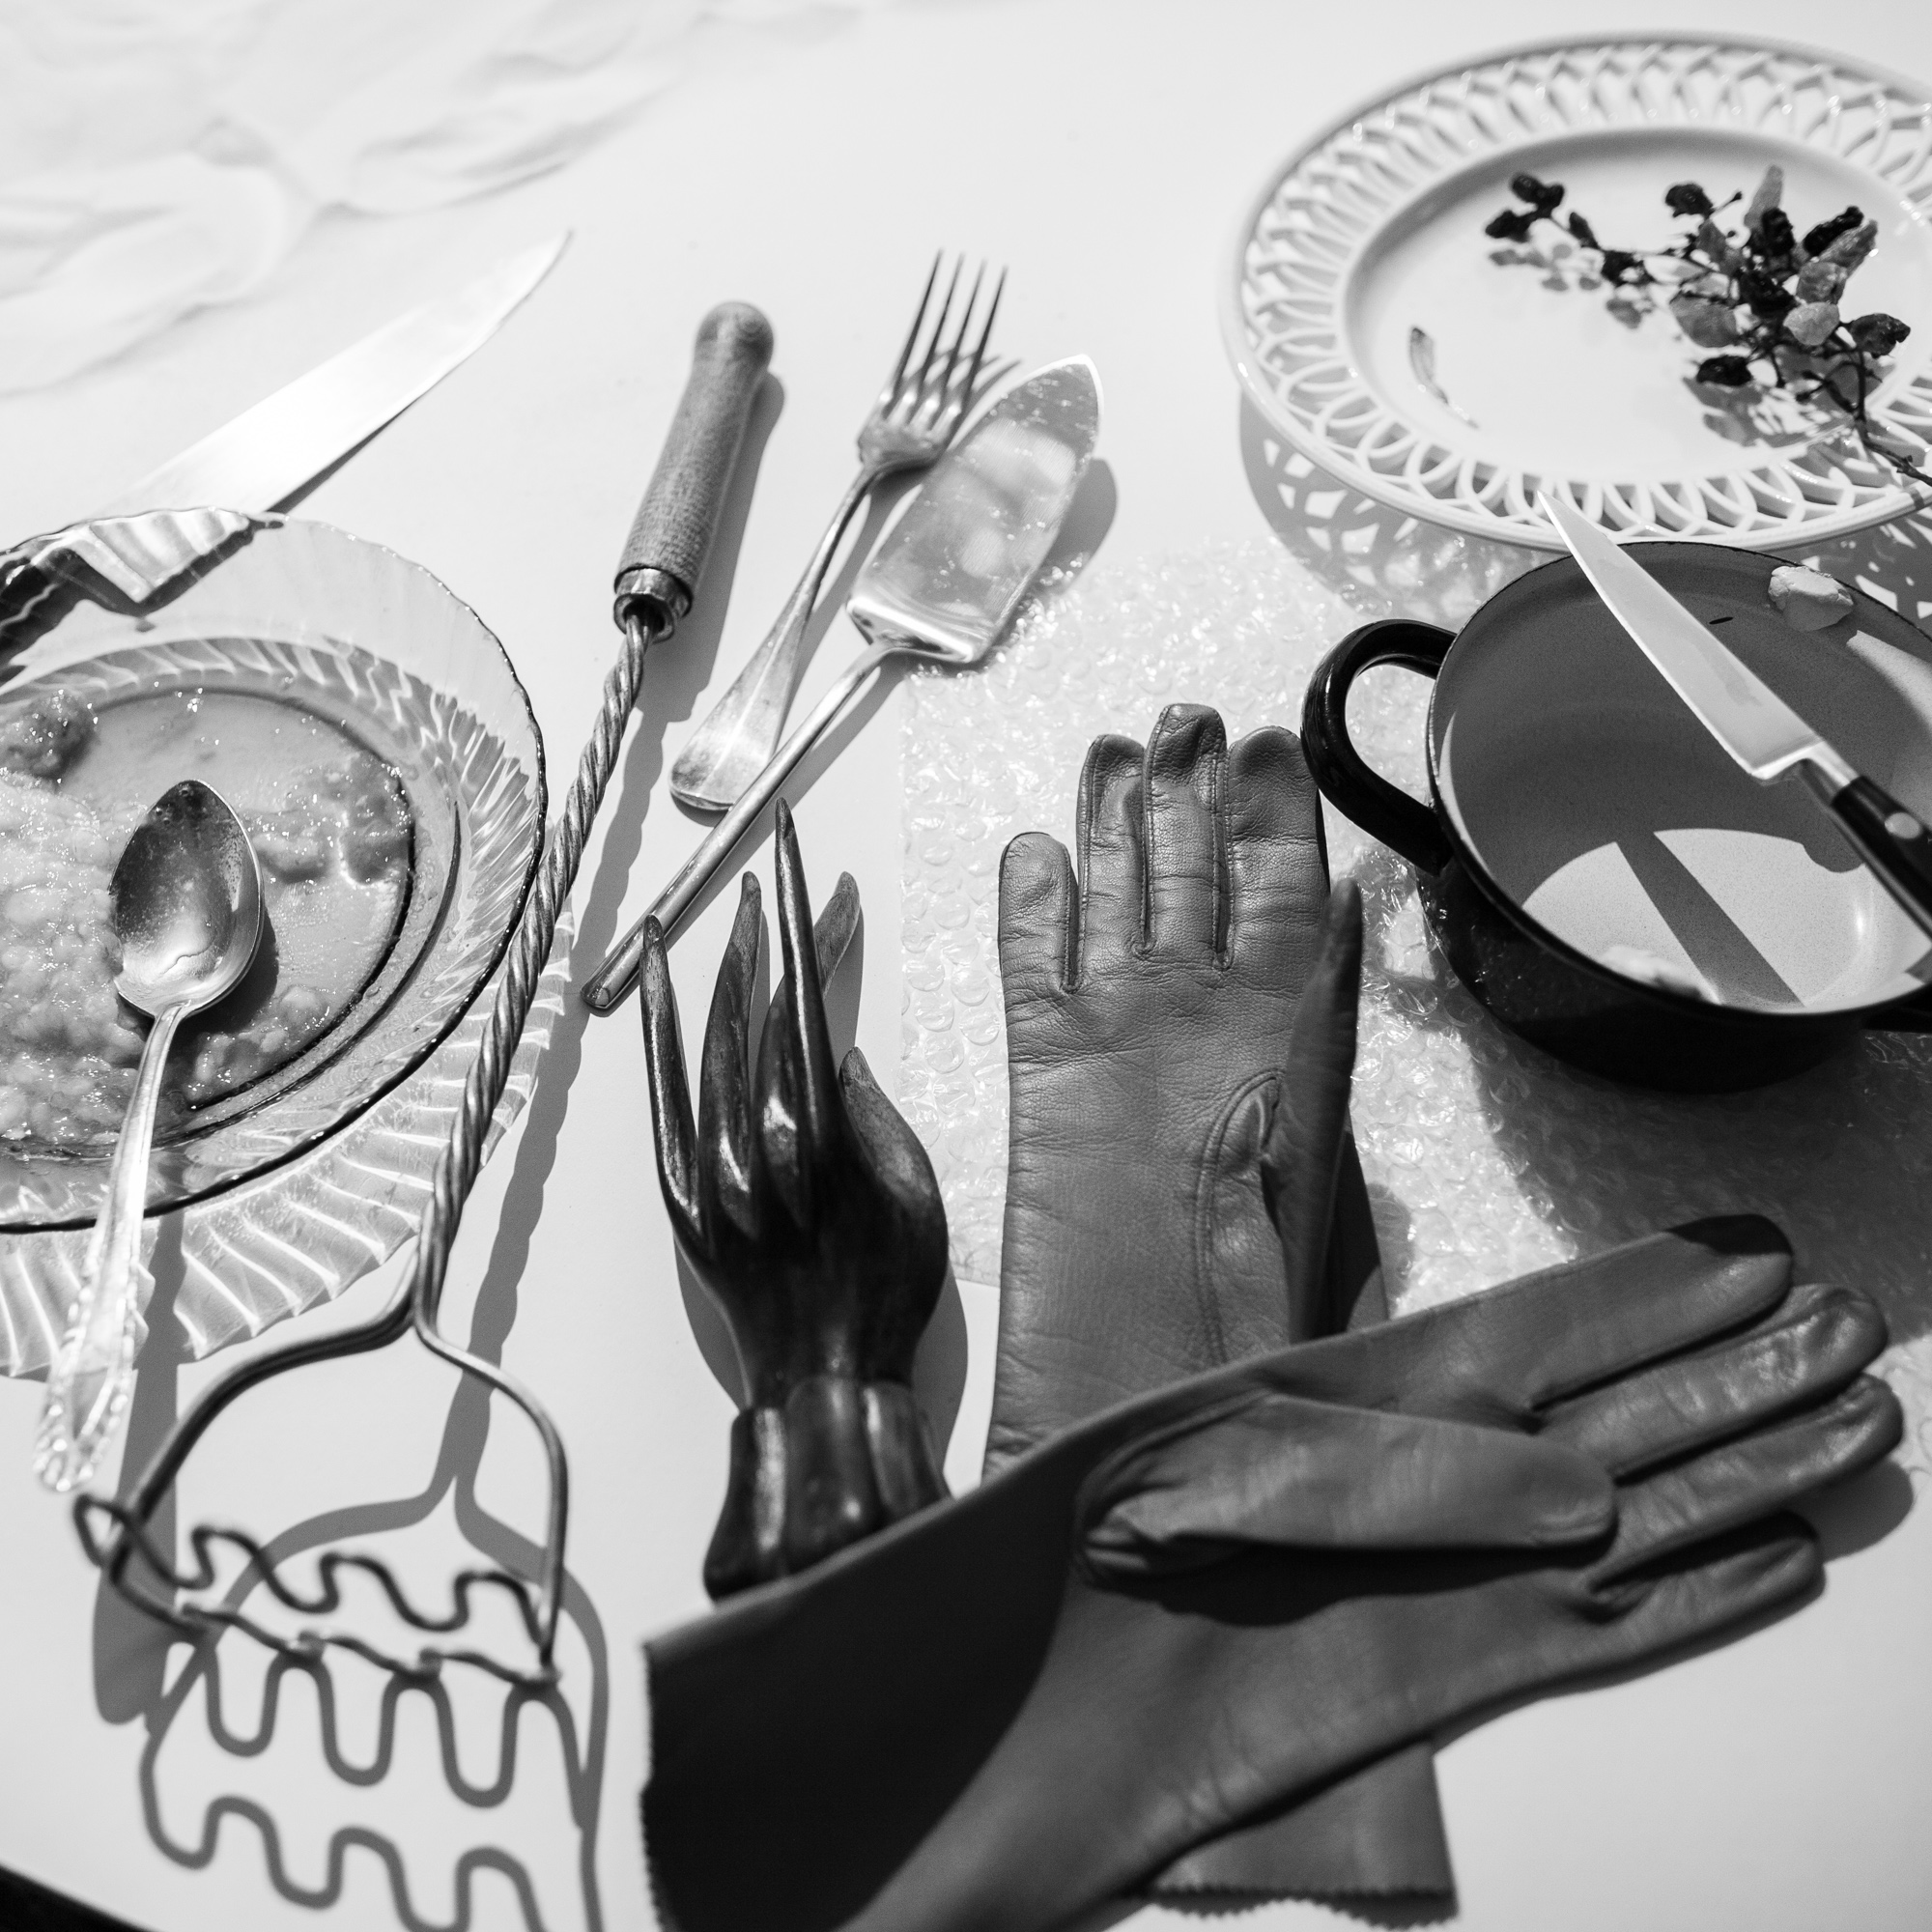 Behind the scenes of foodlydoodlydoo's vegan banana bread recipe. The photo shows the different utensils and props used fo the scene. Such as a pair of gloves, knifes, a wooden hand and some plates.